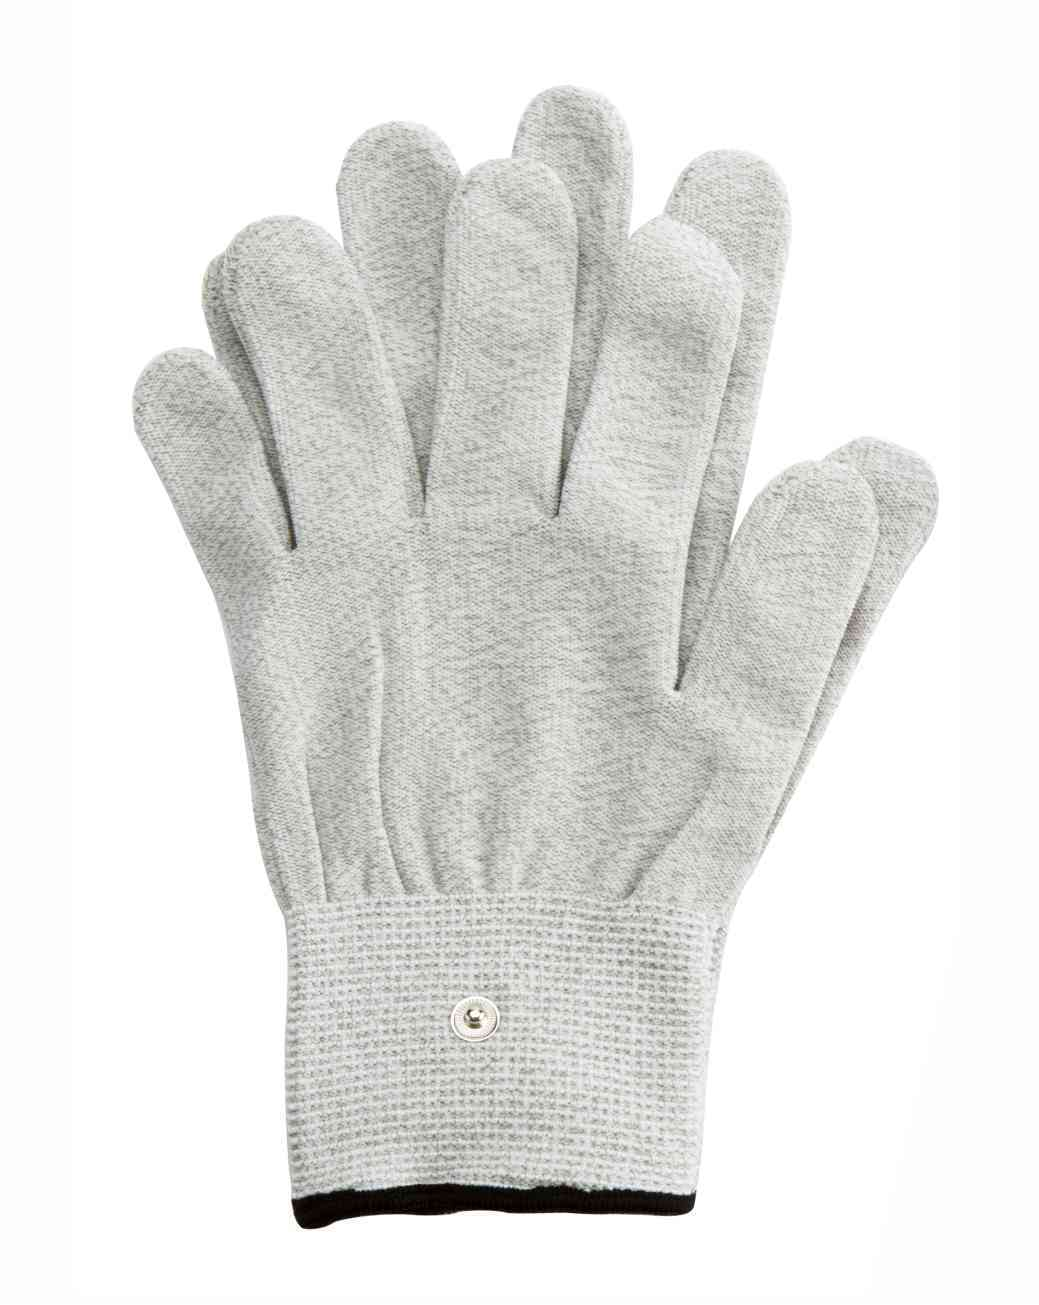 Conductive Gloves***